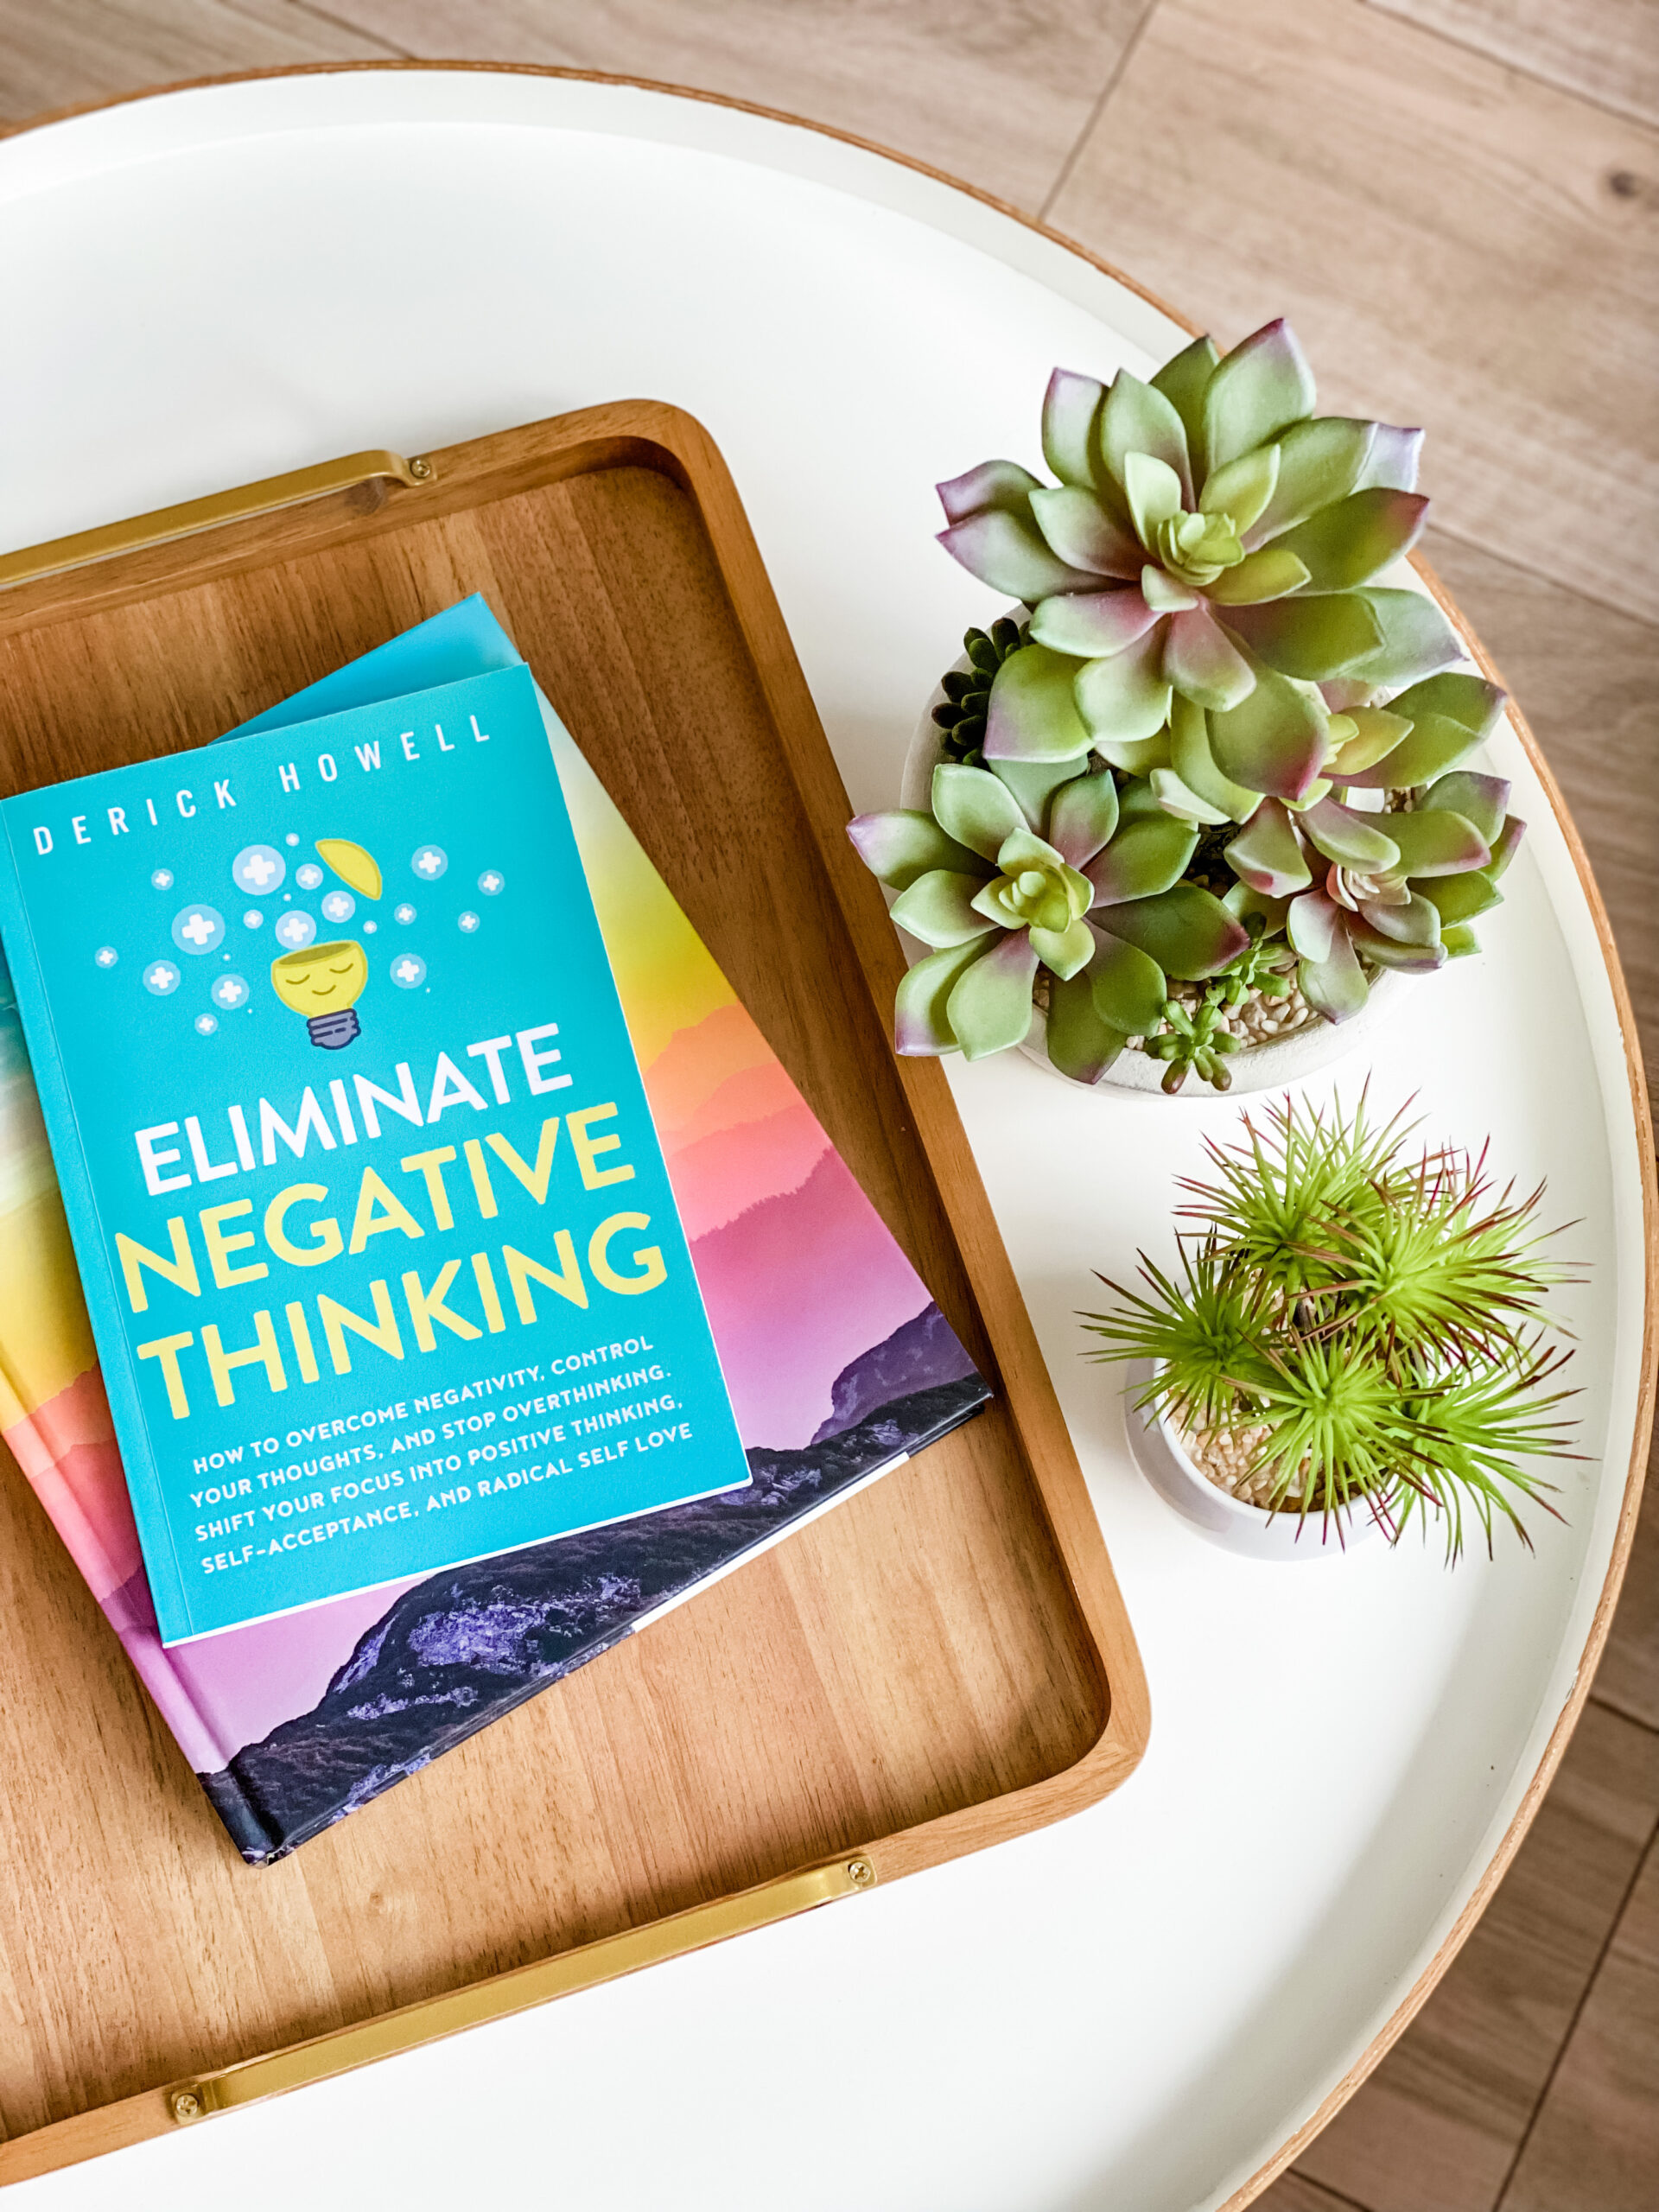 Eliminate negative thinking by Derick Howell